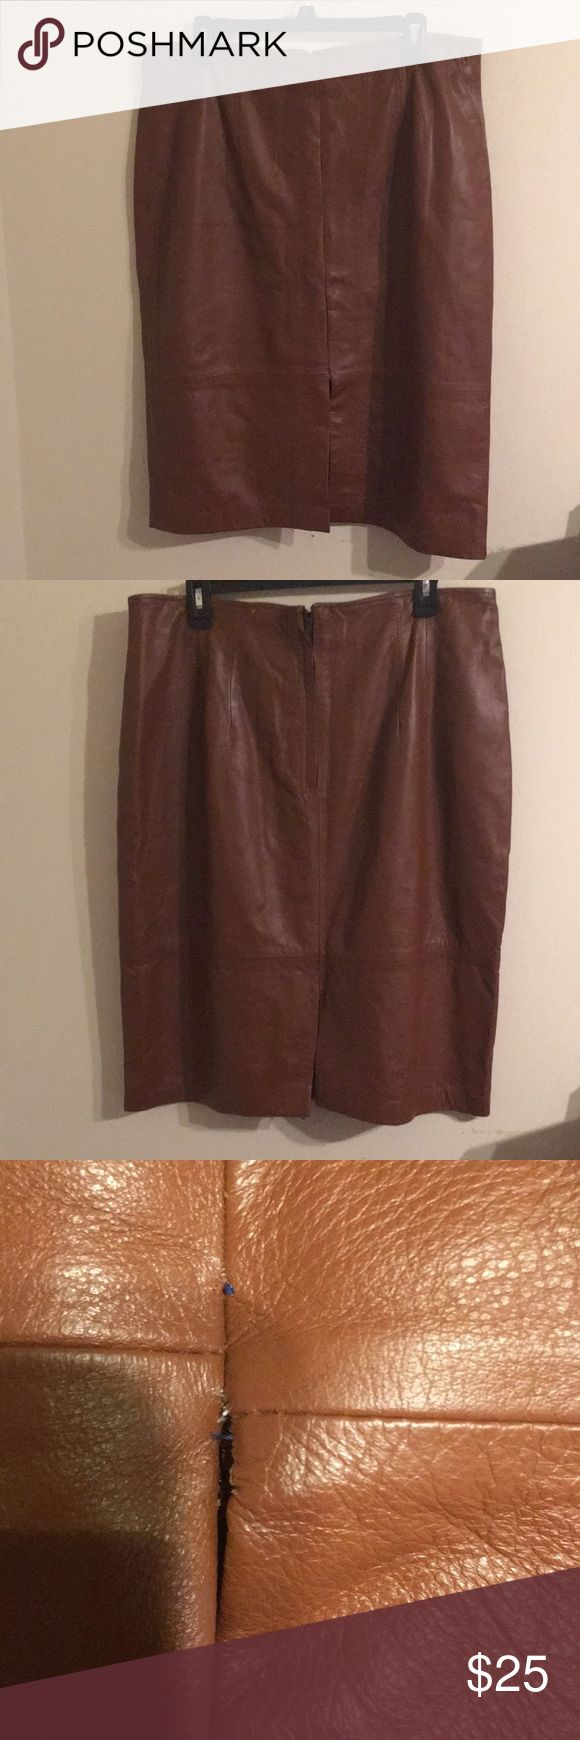 """Genuine leather skirt Vintage Genuine tan leather skirt. Waist has been taken in a little. Length is 25.5"""". Slit is 8"""". Some minor hem work needed on one side of the slits. Barely noticeable but easily fixed. Size 20 open to reasonable offers but no trades. Skirts Pencil"""